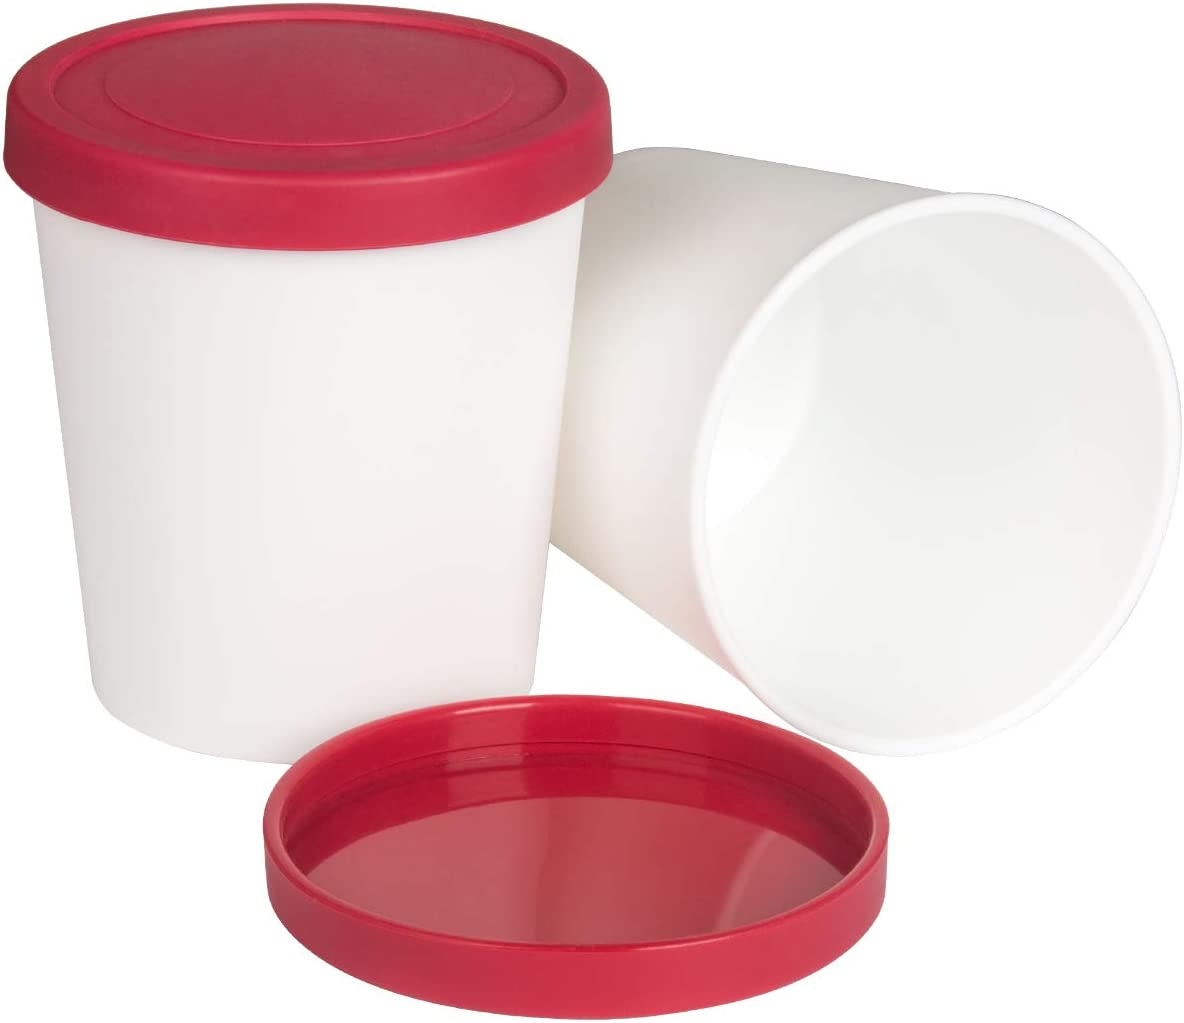 Ice Cream Containers, 1 Quart Freezer Containers Reusable BPA Free Ice Cream Storage Tubs with Lids for Homemade IceCream Frozen Yogurt Sorbet 2PCS RED